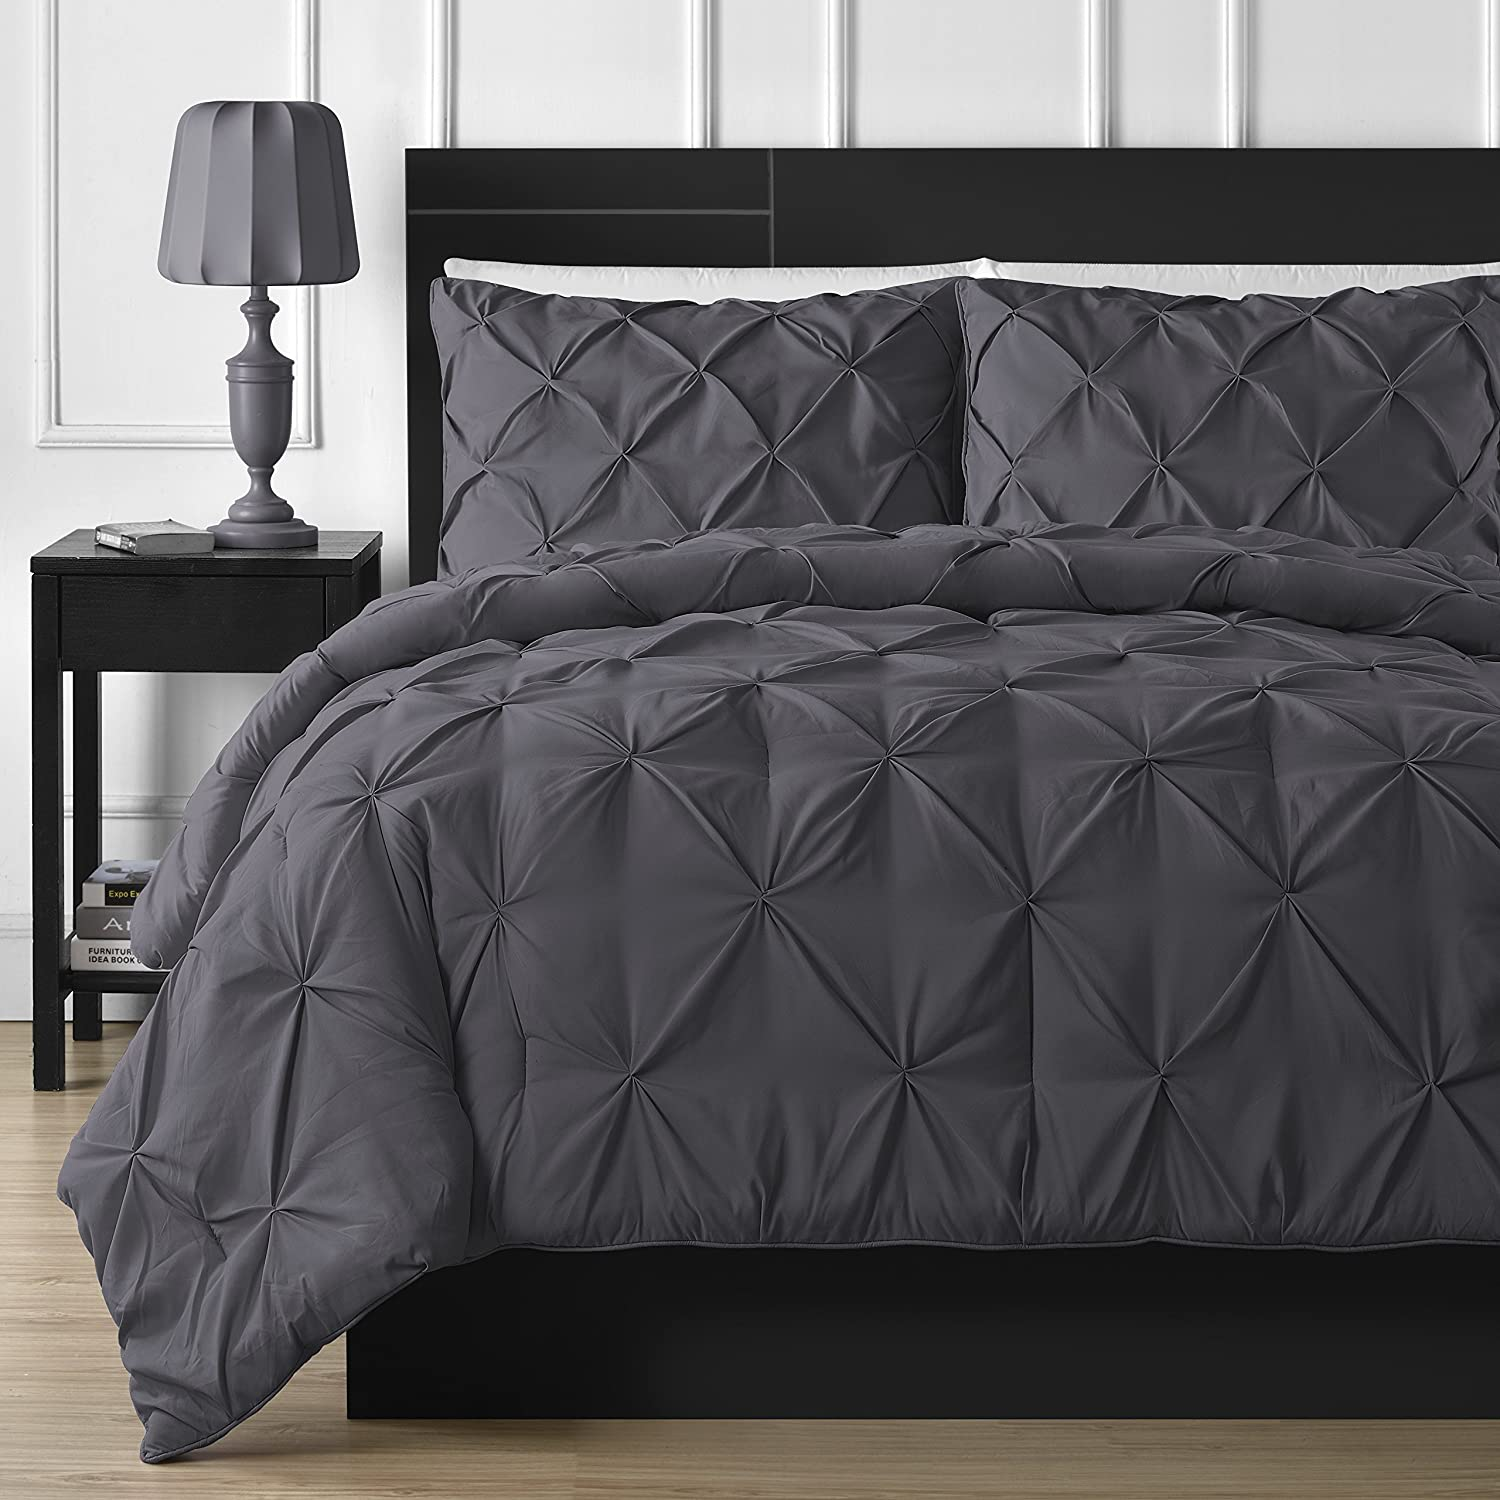 Double-needle Durable Stitching Comfy Bedding 3-piece Pinch Pleat Comforter Set Queen, Gray